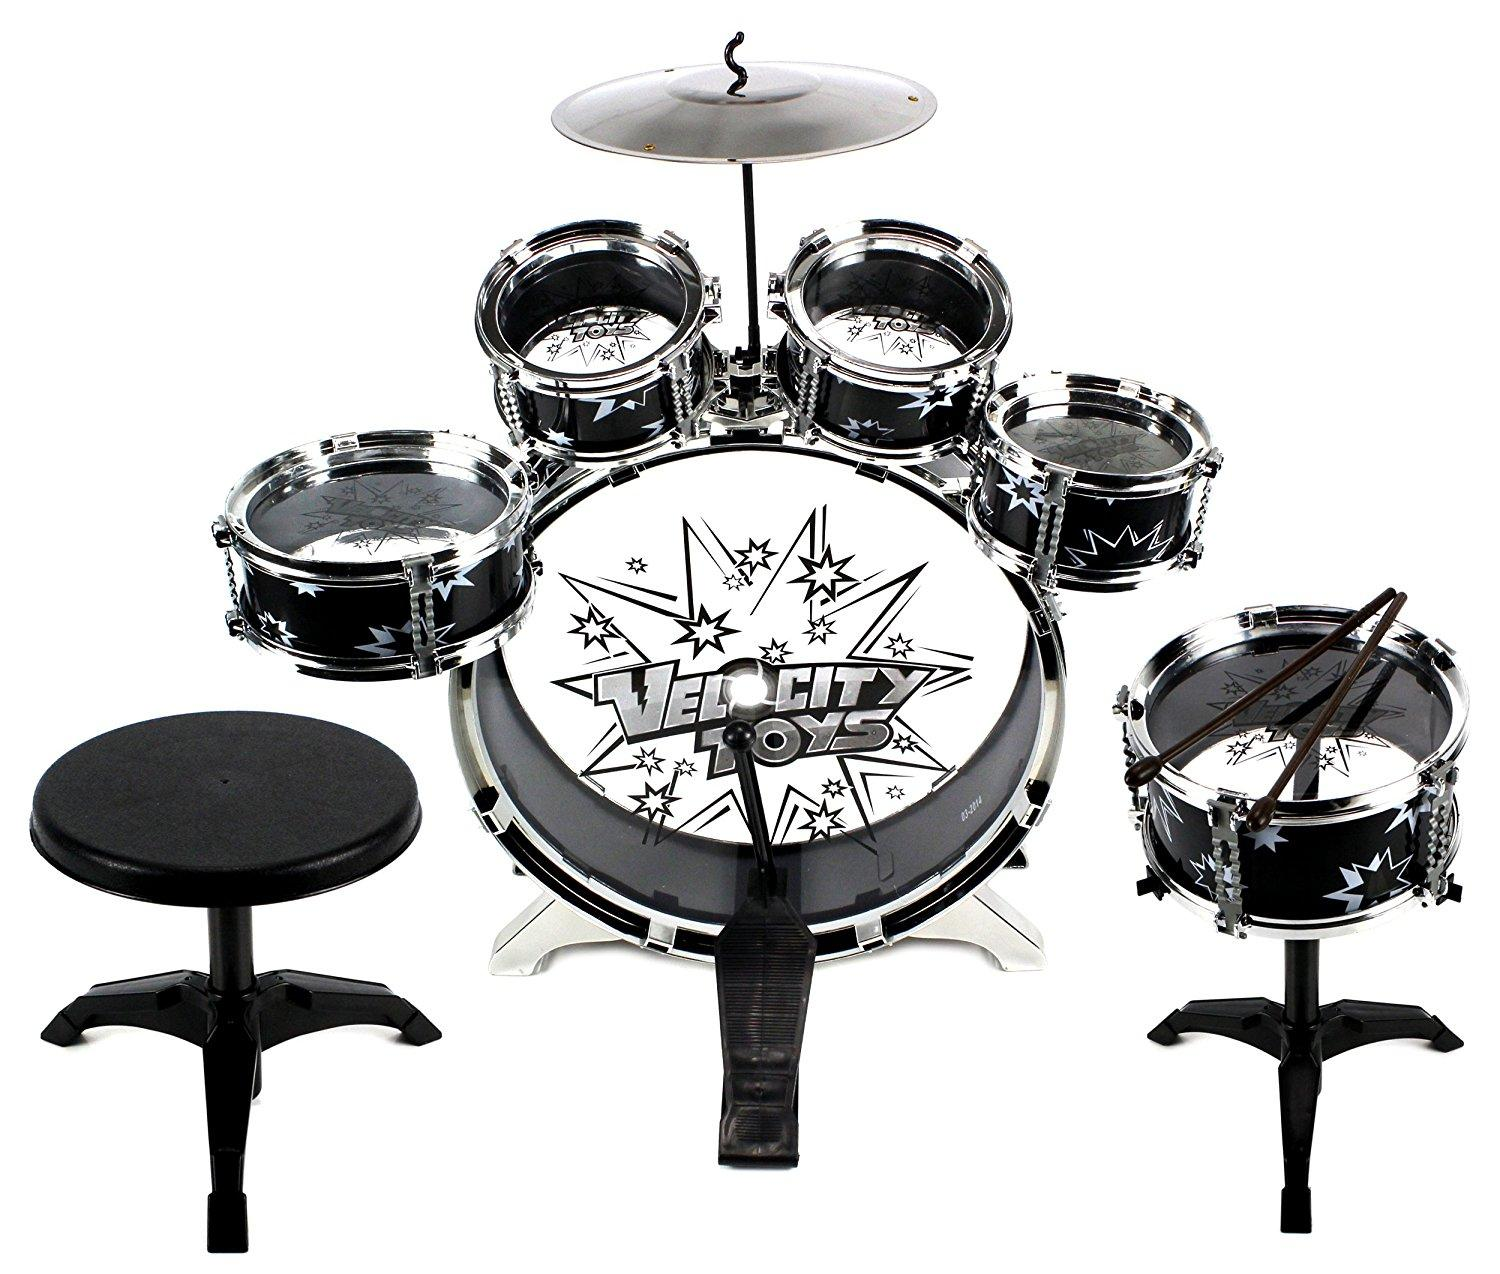 11 piece kids dum set children 39 s musical instrument drum play set w 6 drums cymbal chair. Black Bedroom Furniture Sets. Home Design Ideas